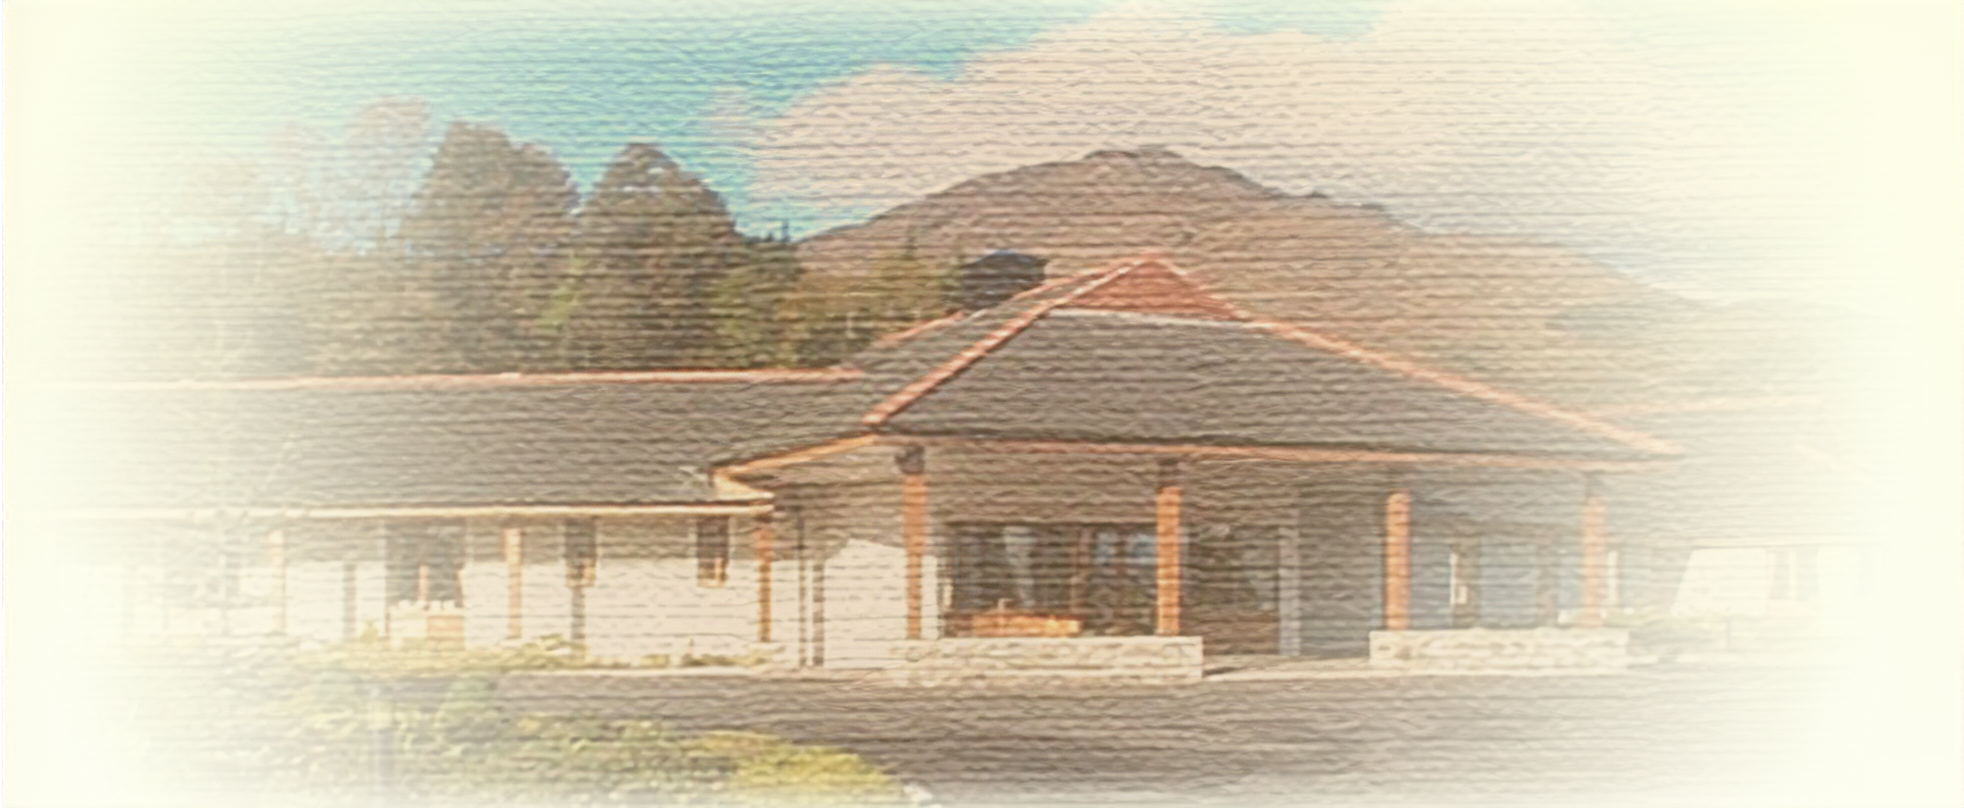 Carlingford Nursing Home picture